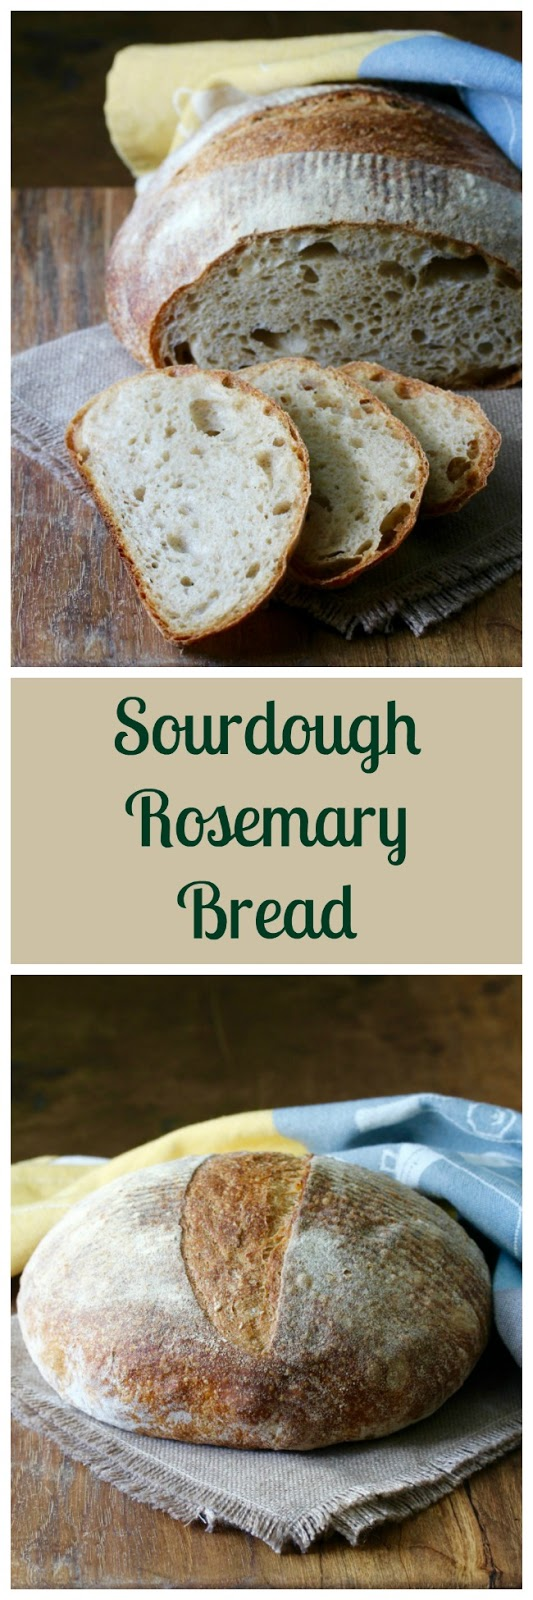 This Pain Au Romarin Or Rosemary Bread Is One Of My Favorite Sourdough Breads